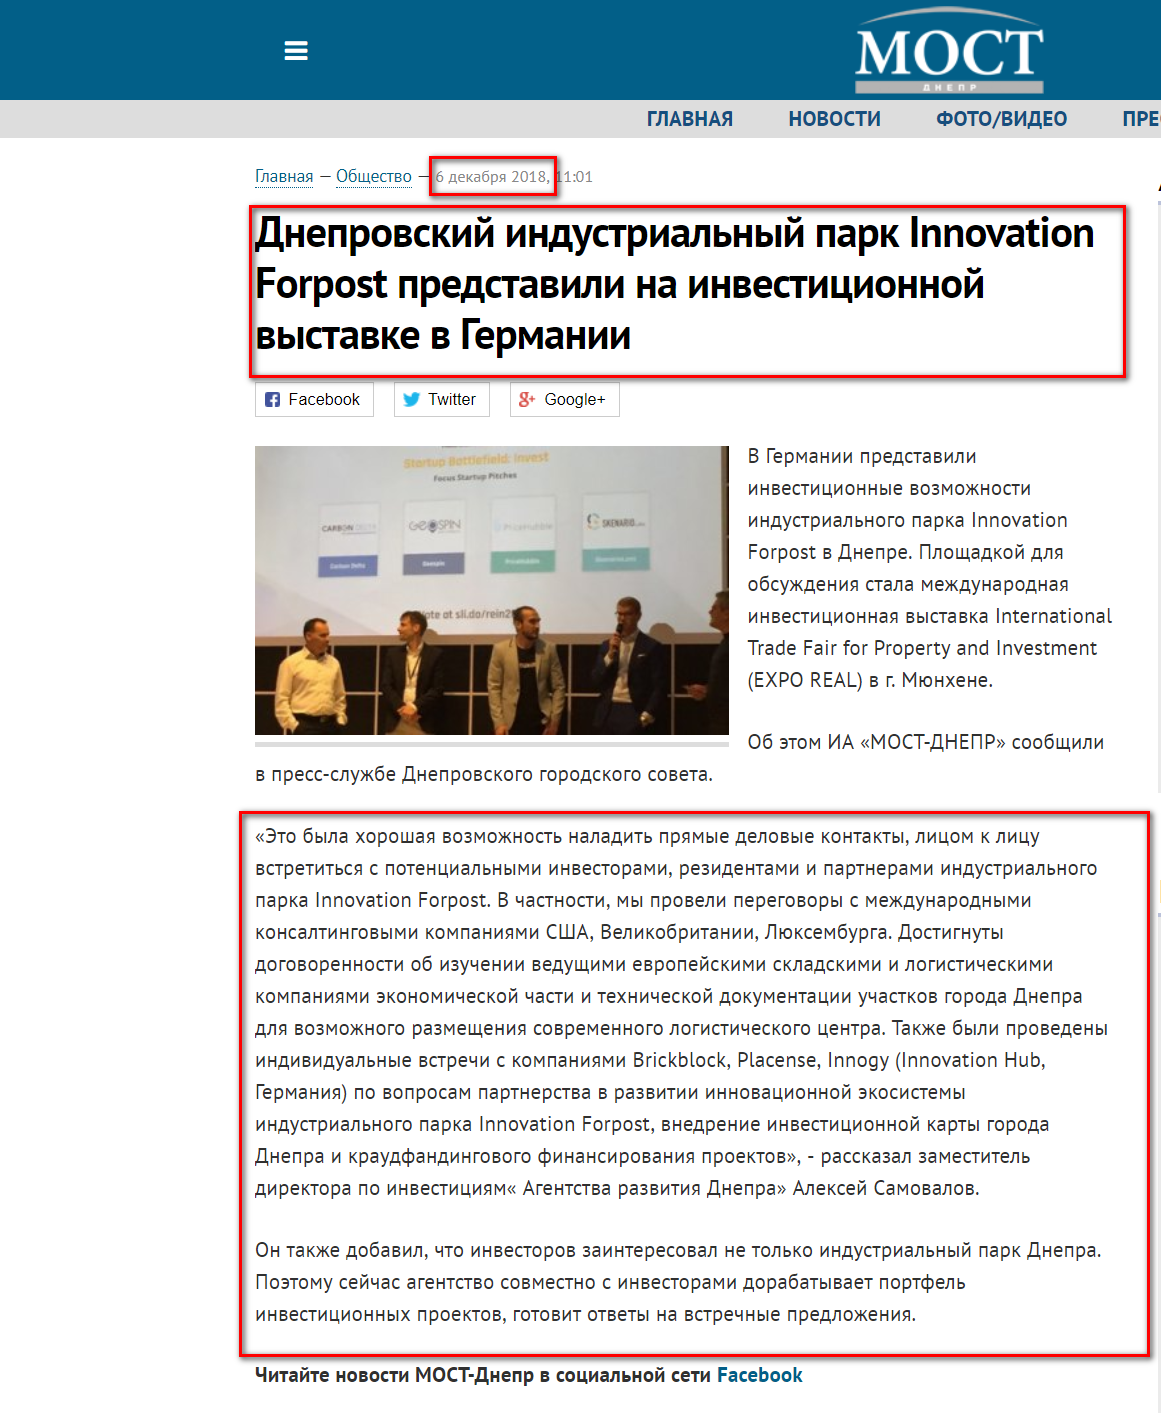 https://most-dnepr.info/news/society/169451_dneprovskiy_industrialniy_park.htm